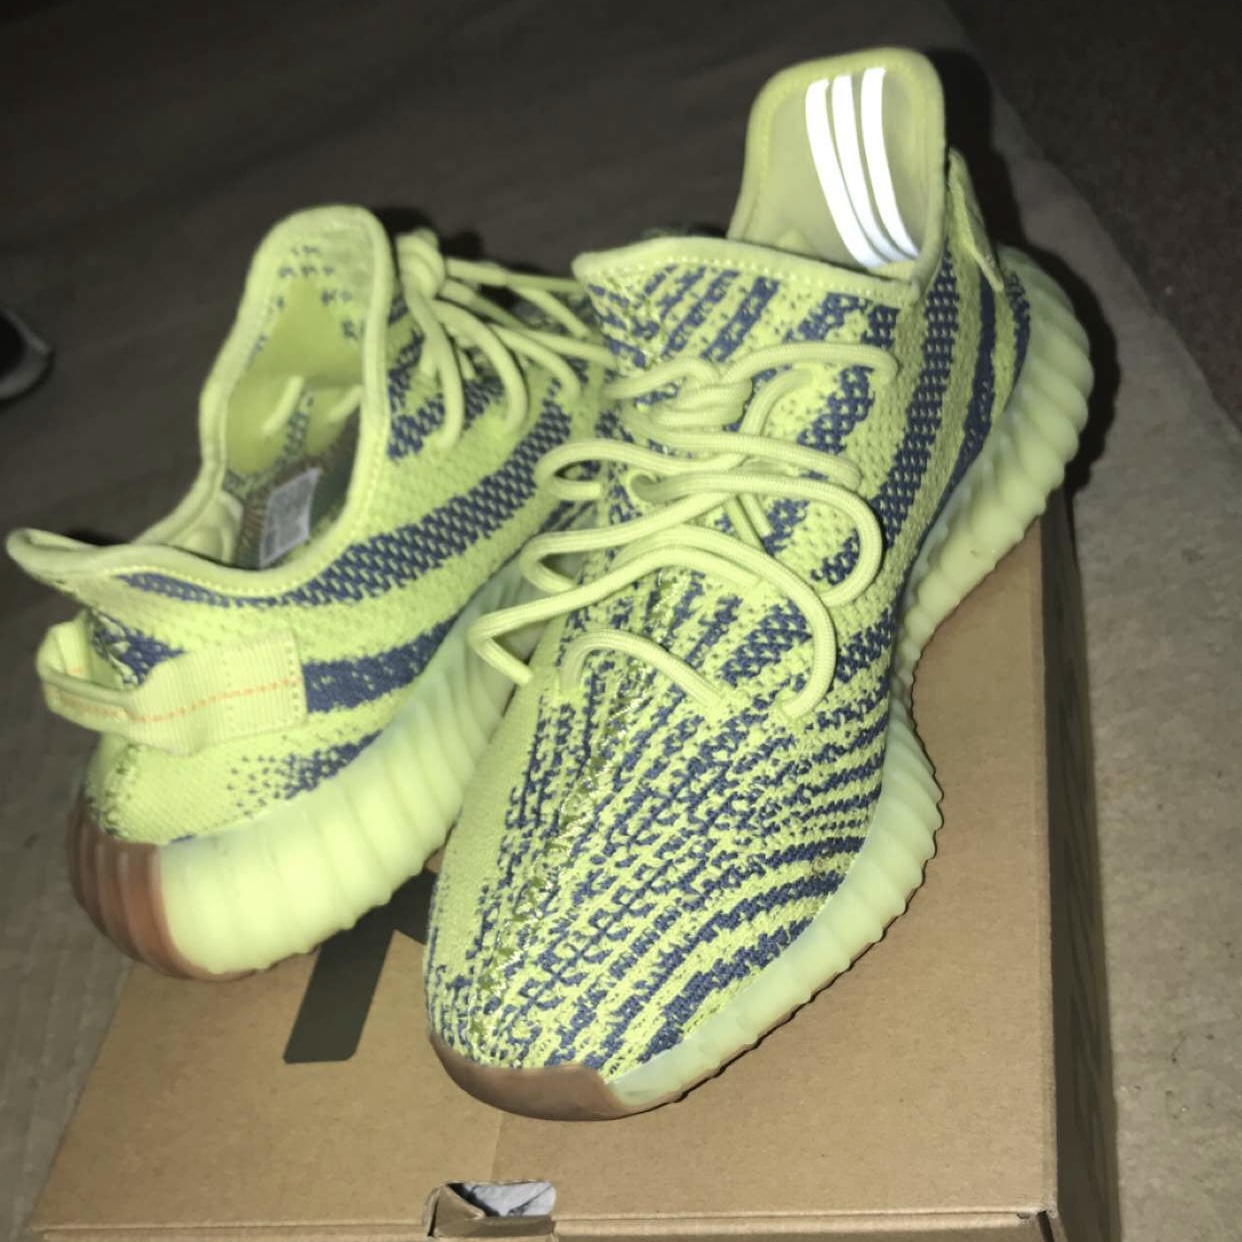 promo code c7df8 b5ceb Yeezy 350 lime green retail 700 in store. So comfy... - Depop